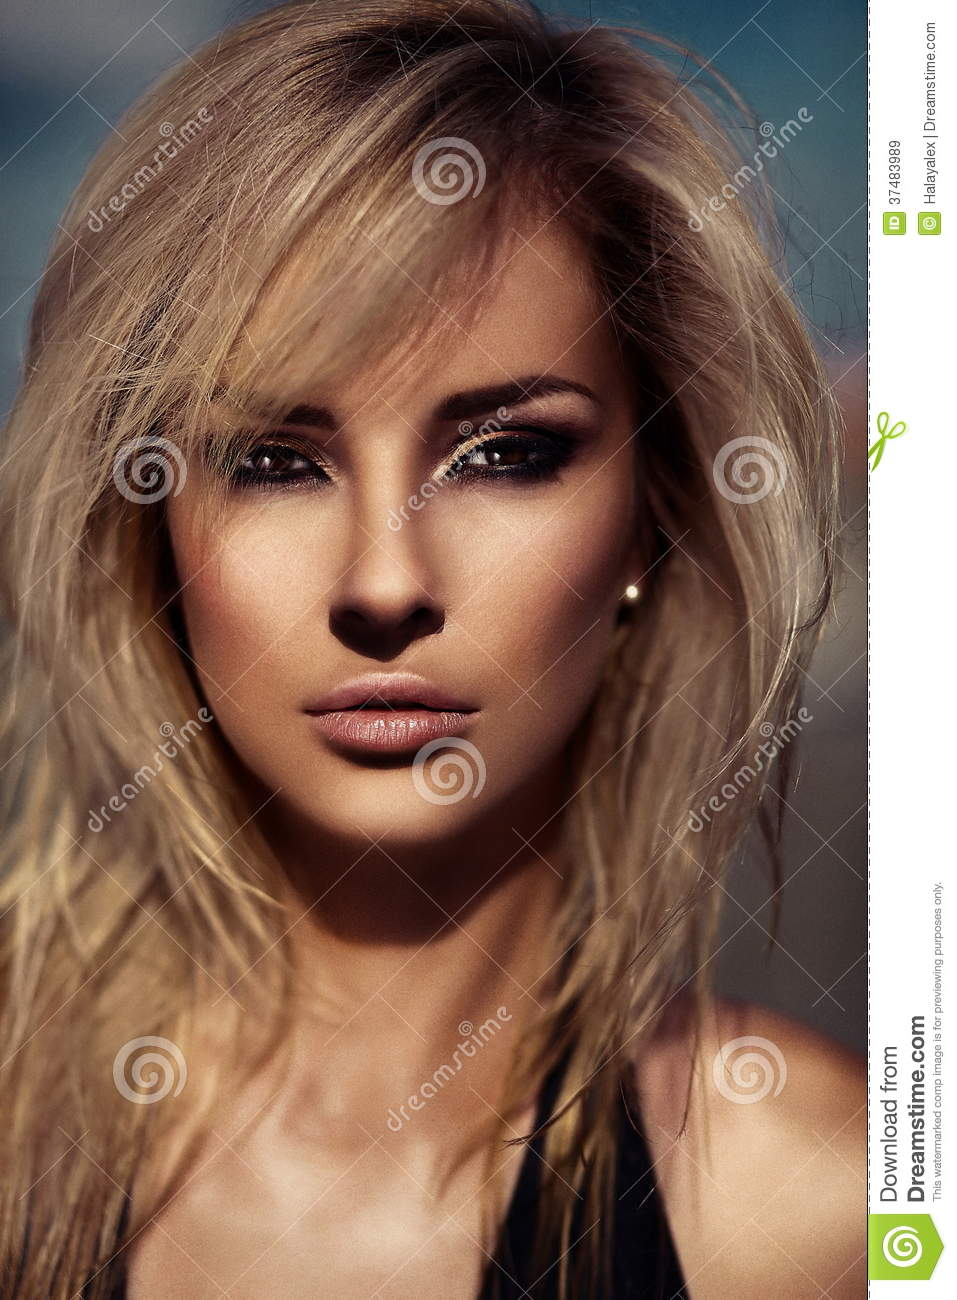 Glamor closeup portrait of beautiful stylish blond Caucasian young woman model with bright makeup, with perfect sunbathed